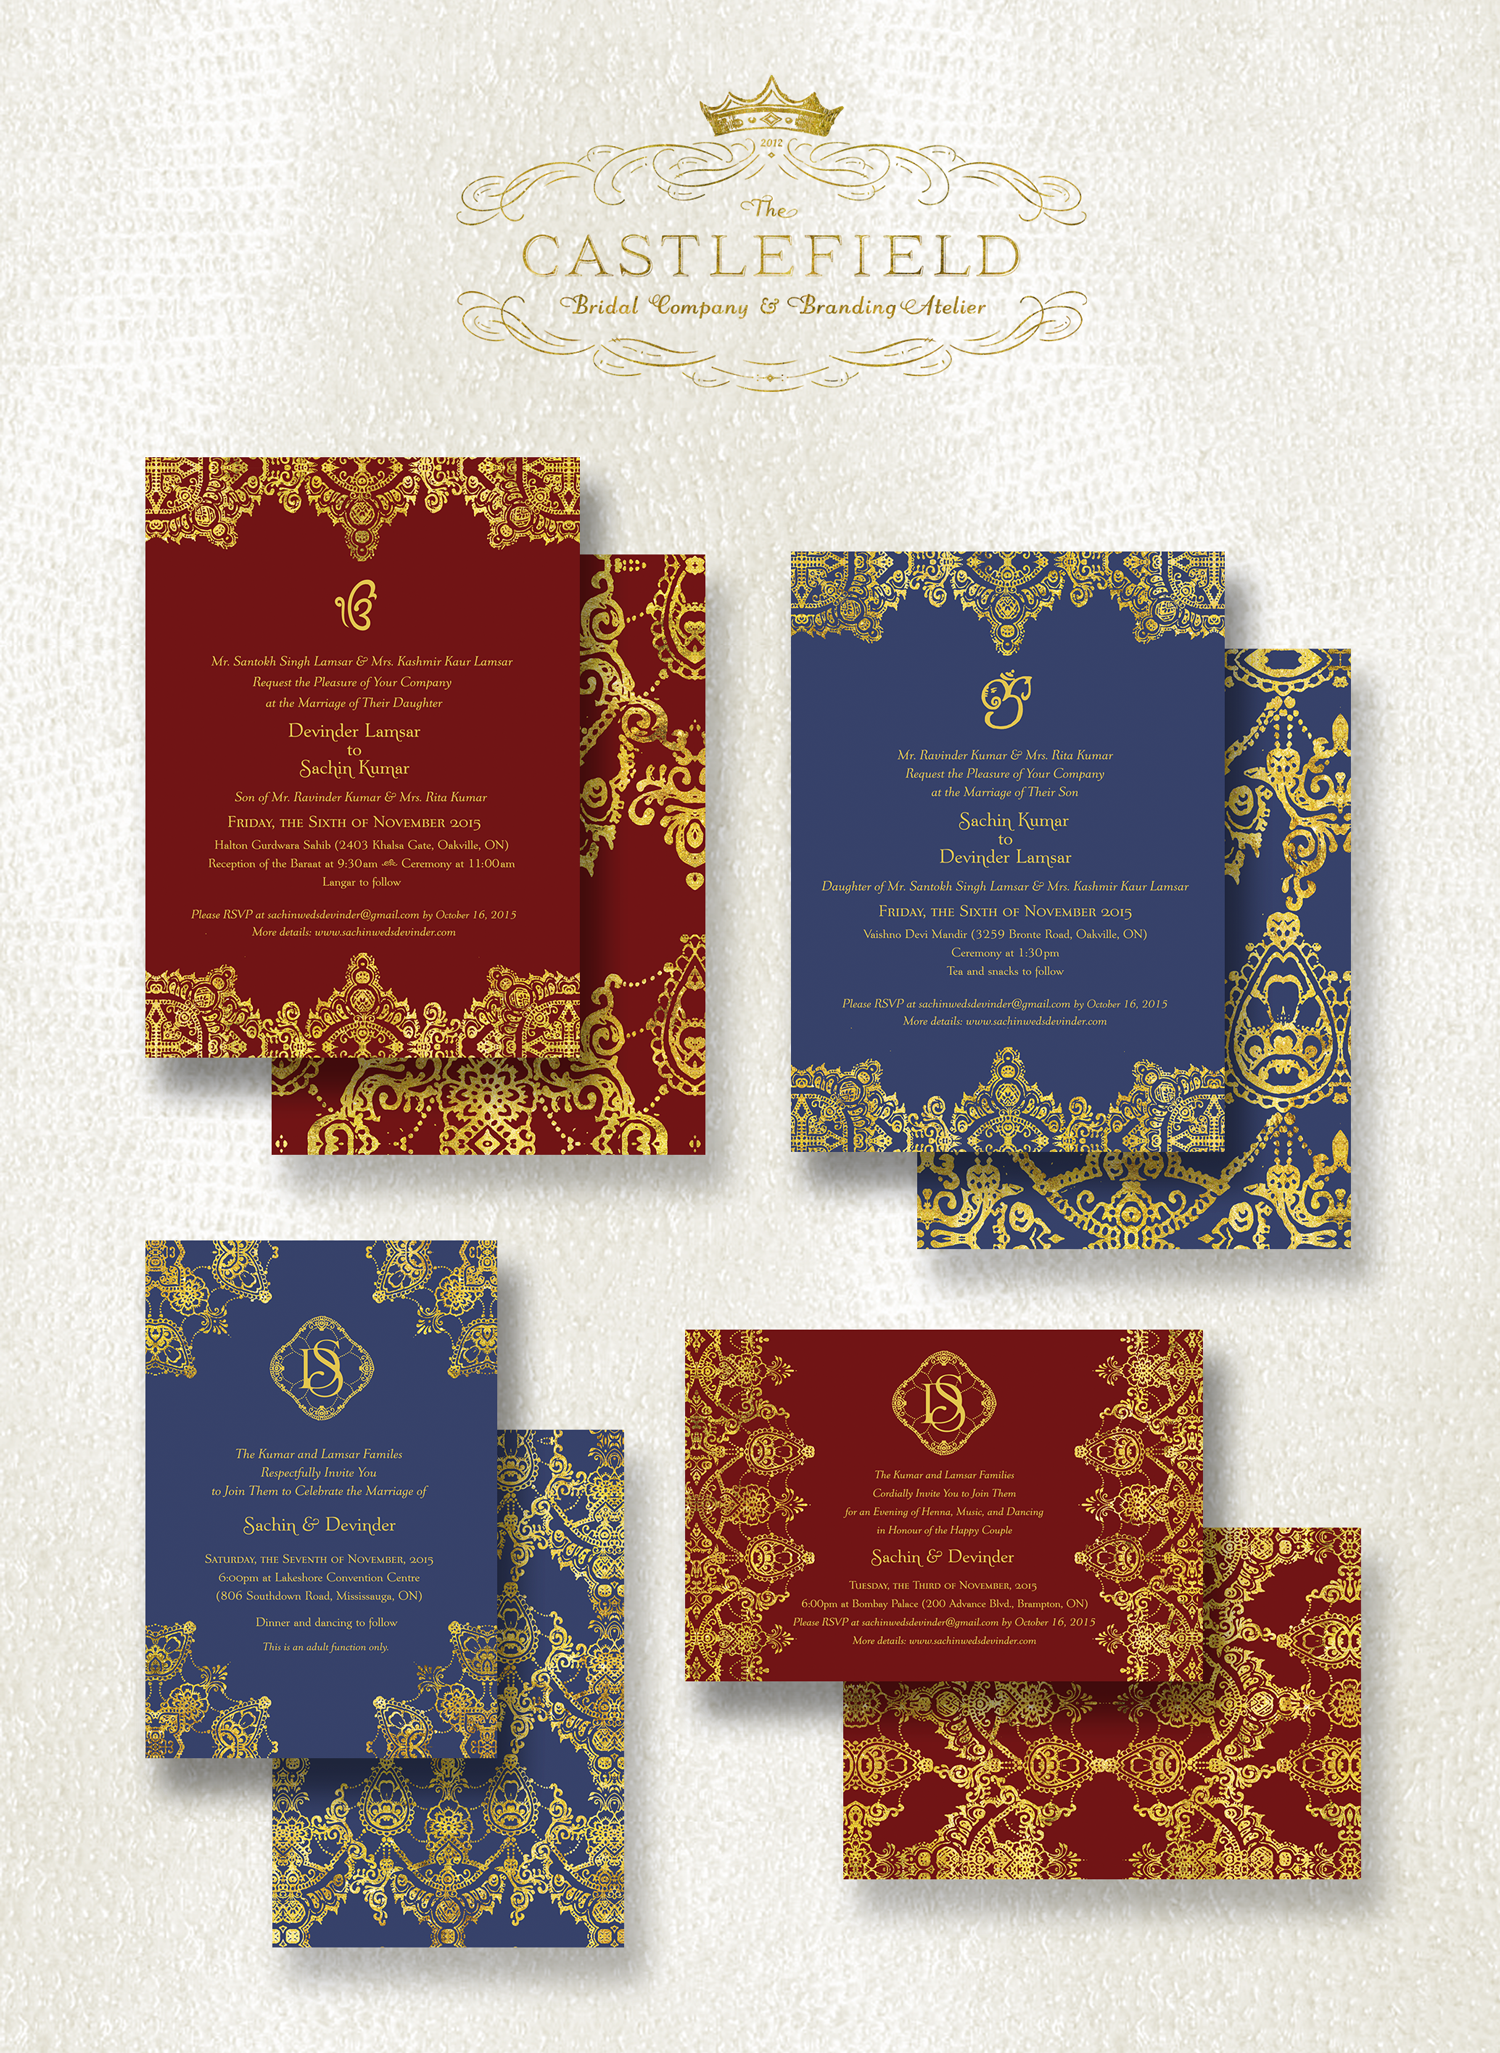 Henna Pattern Indian Wedding Invitations By Castlefield Couture Graphic Design Atelier